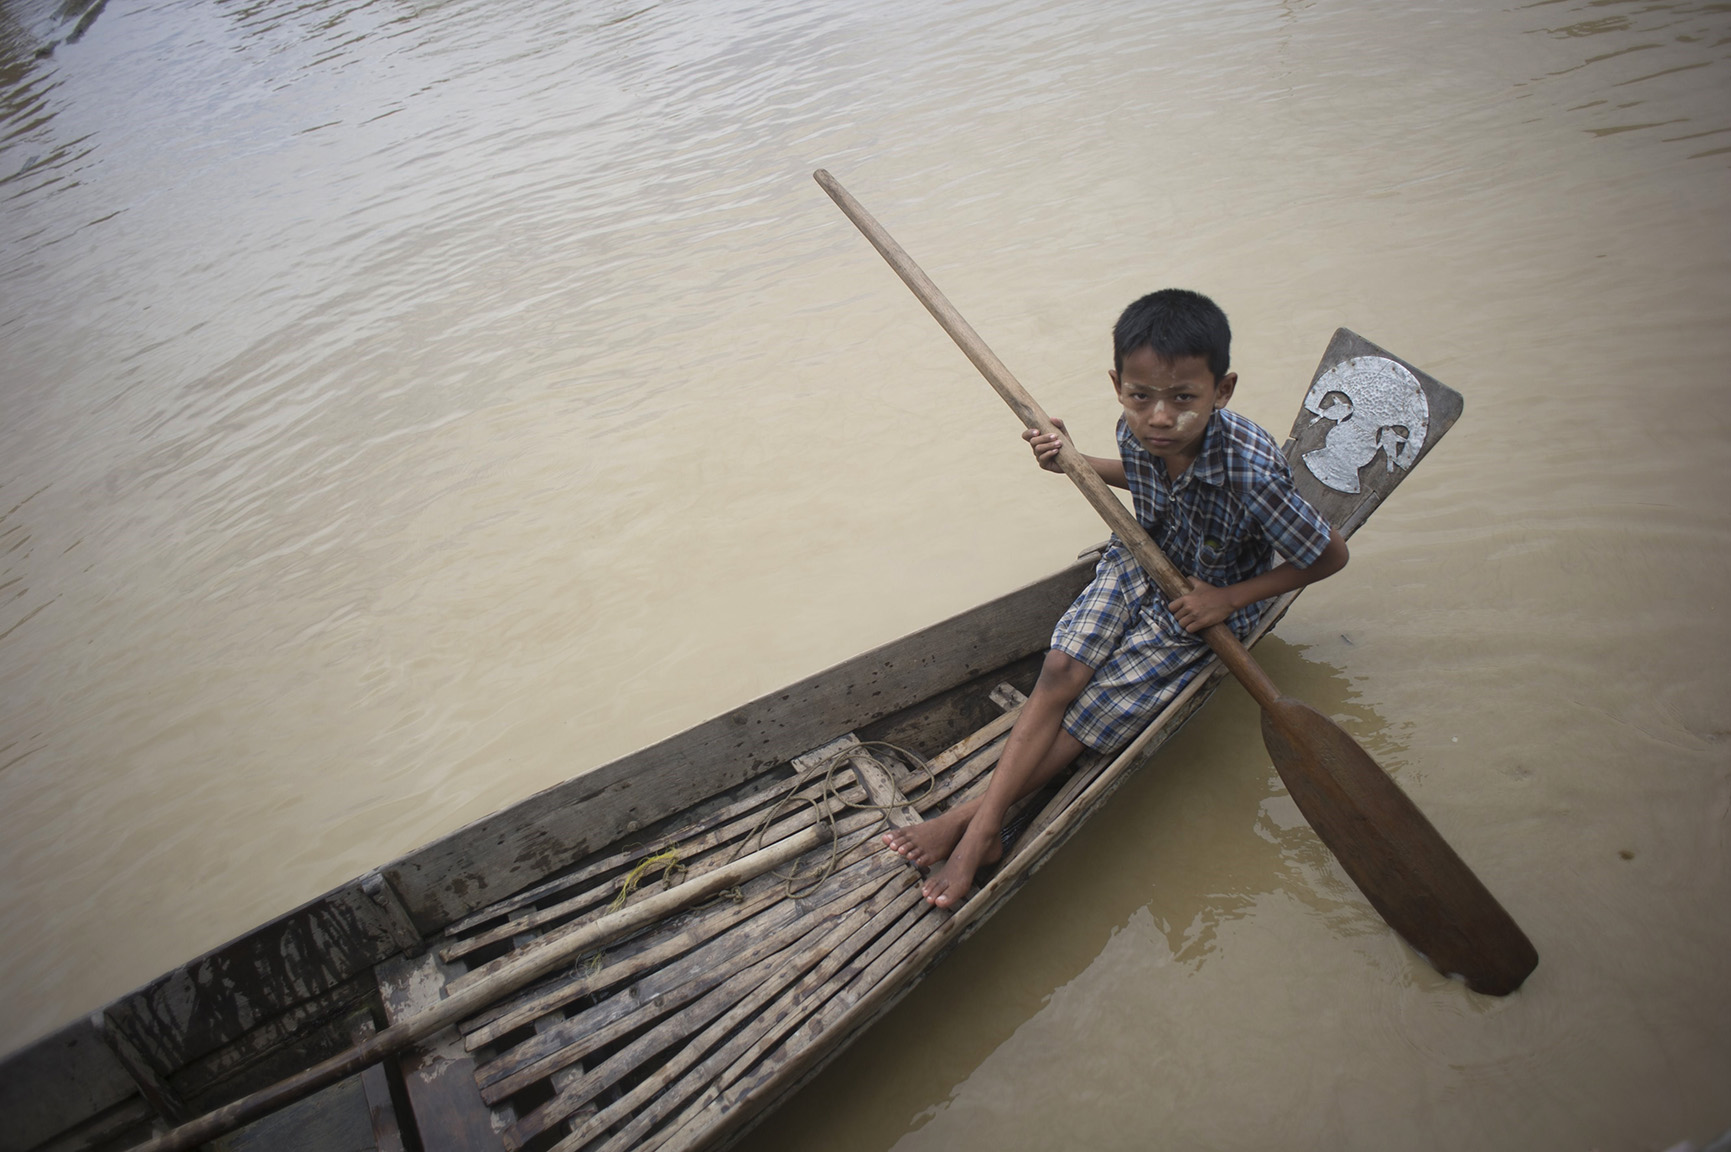 A flood-affected resident rides on a small boat in floodwaters at the Kyauk Ye village